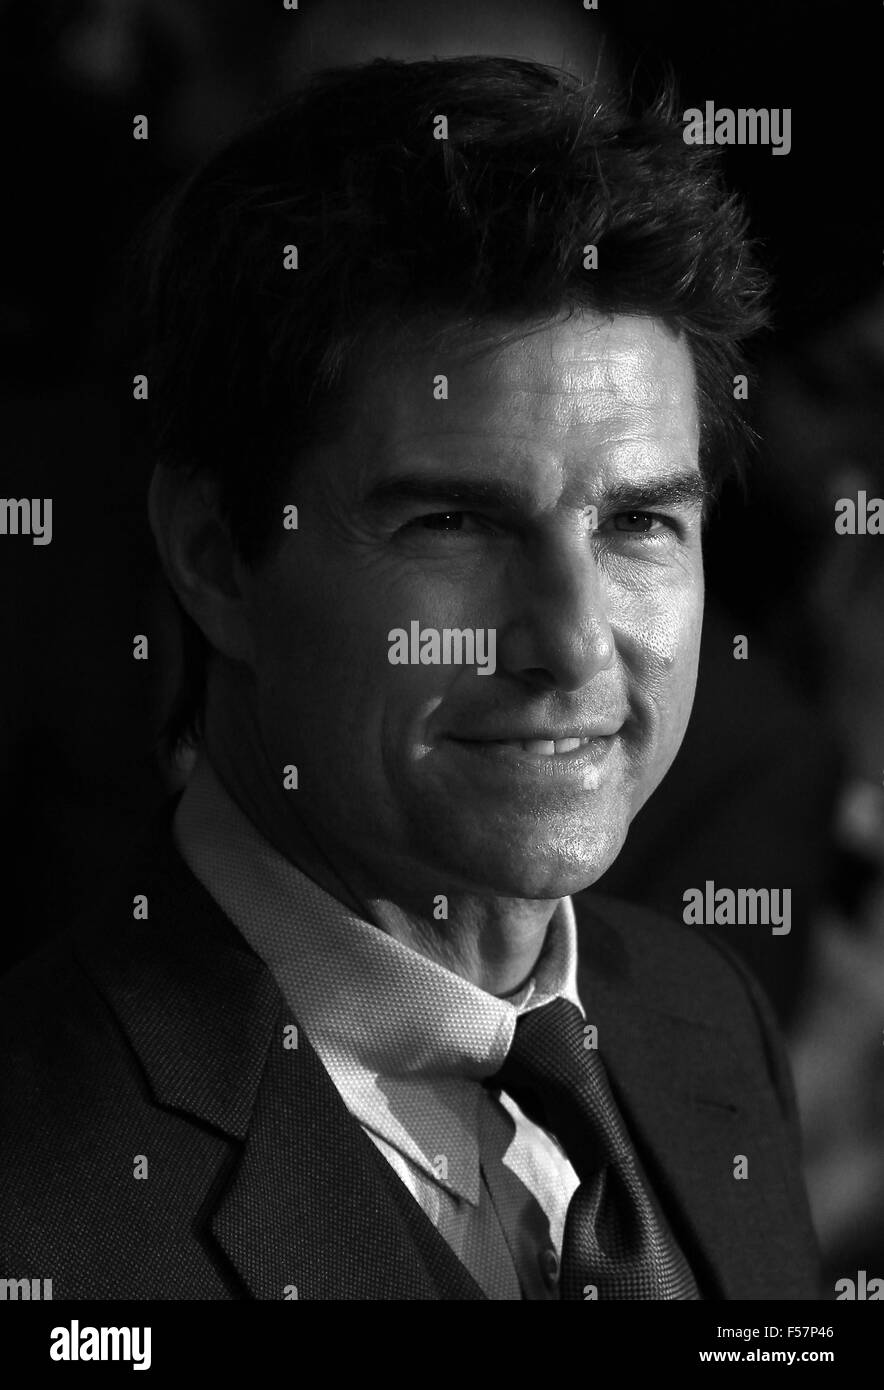 London, UK, 04th April, 2013: Tom Cruise attends The UK Premiere Of Oblivion at the BFI IMAX - Stock Image